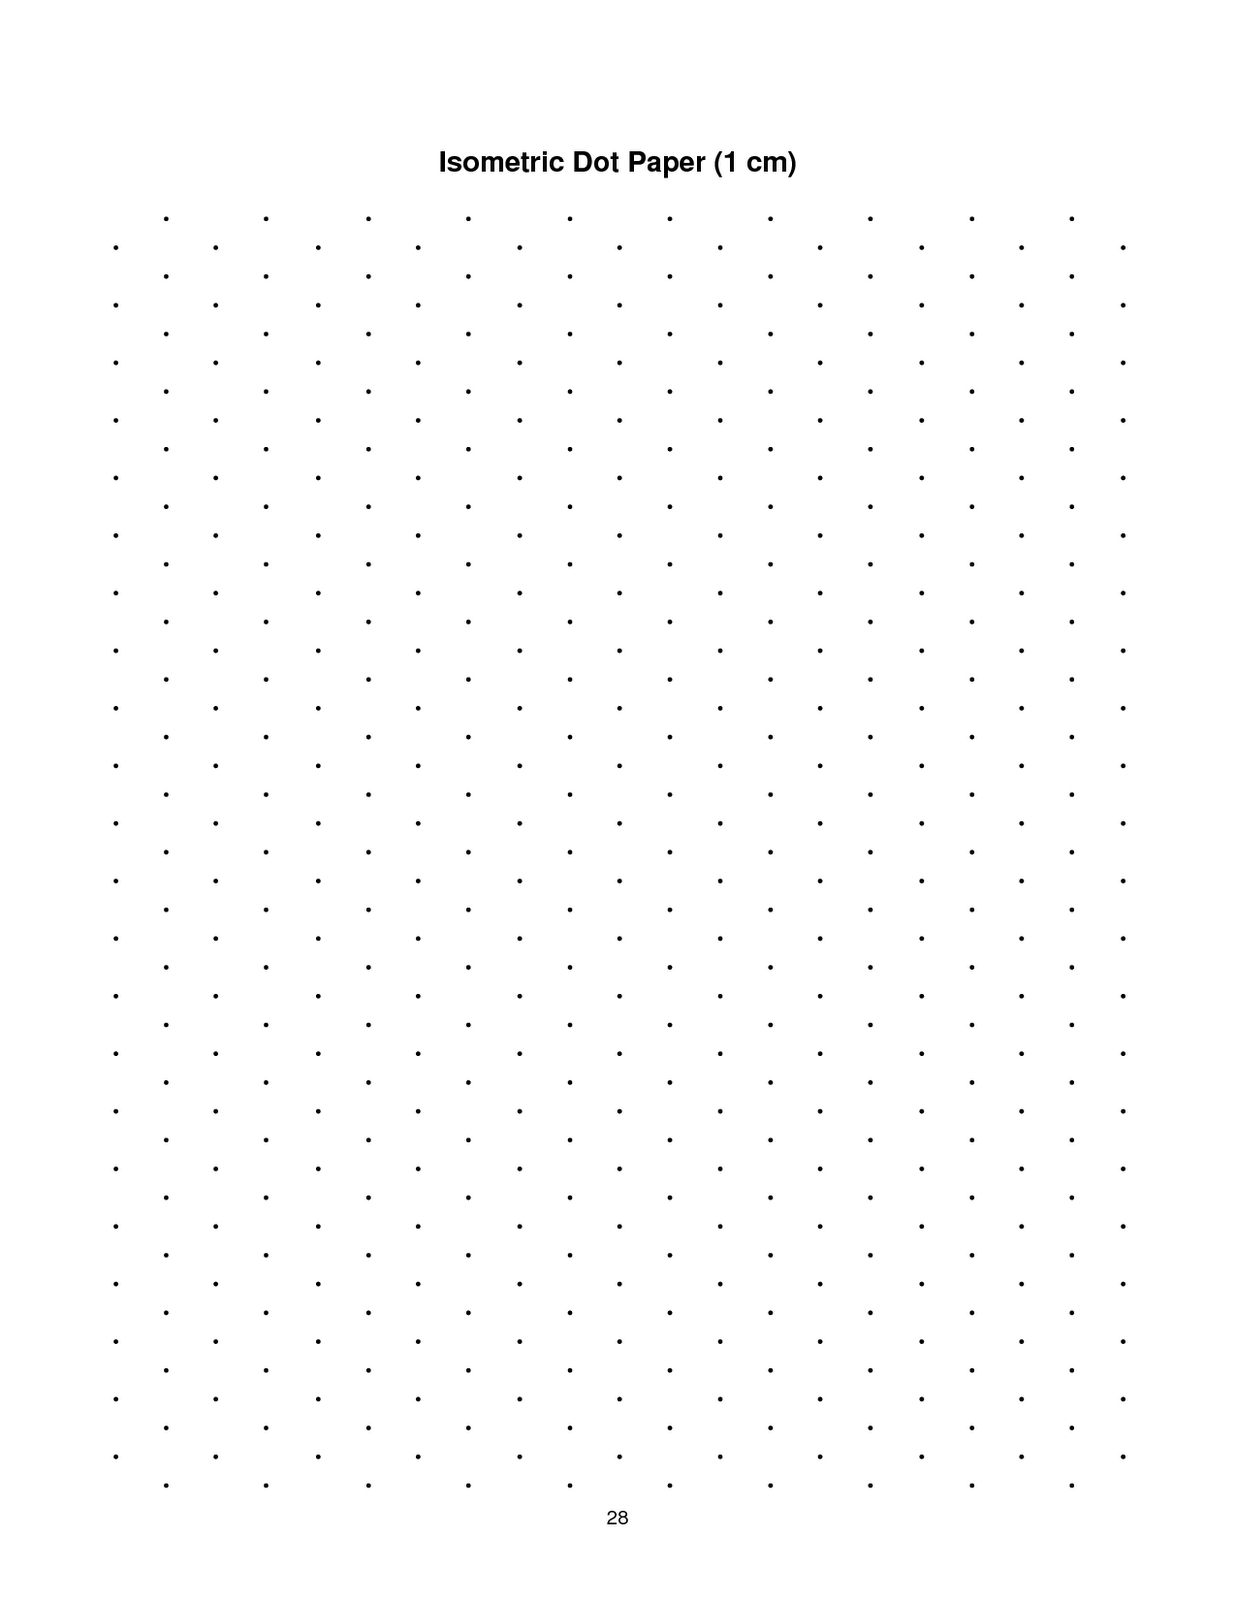 Isometric Dot Drawings And Use This Isometric Dot